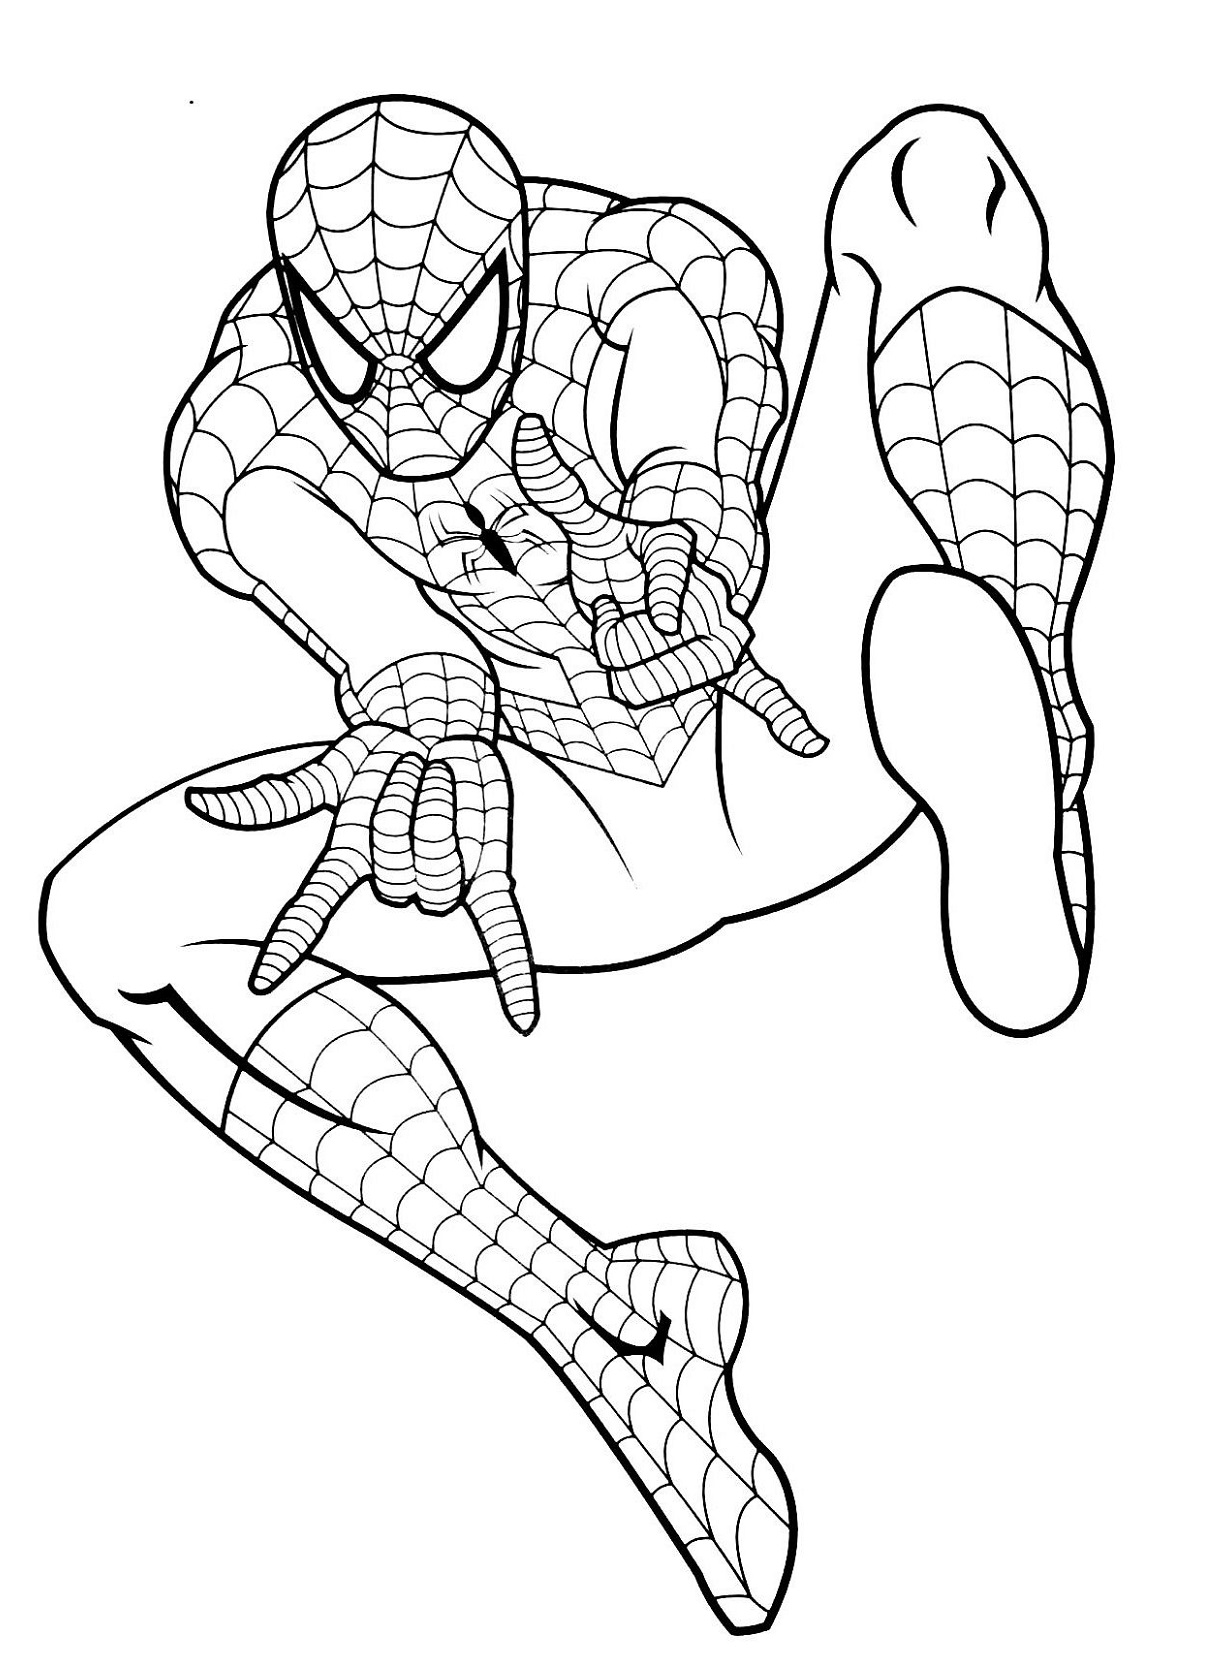 young marvel coloring pages spider man coloring page superhero coloring pages young coloring marvel pages